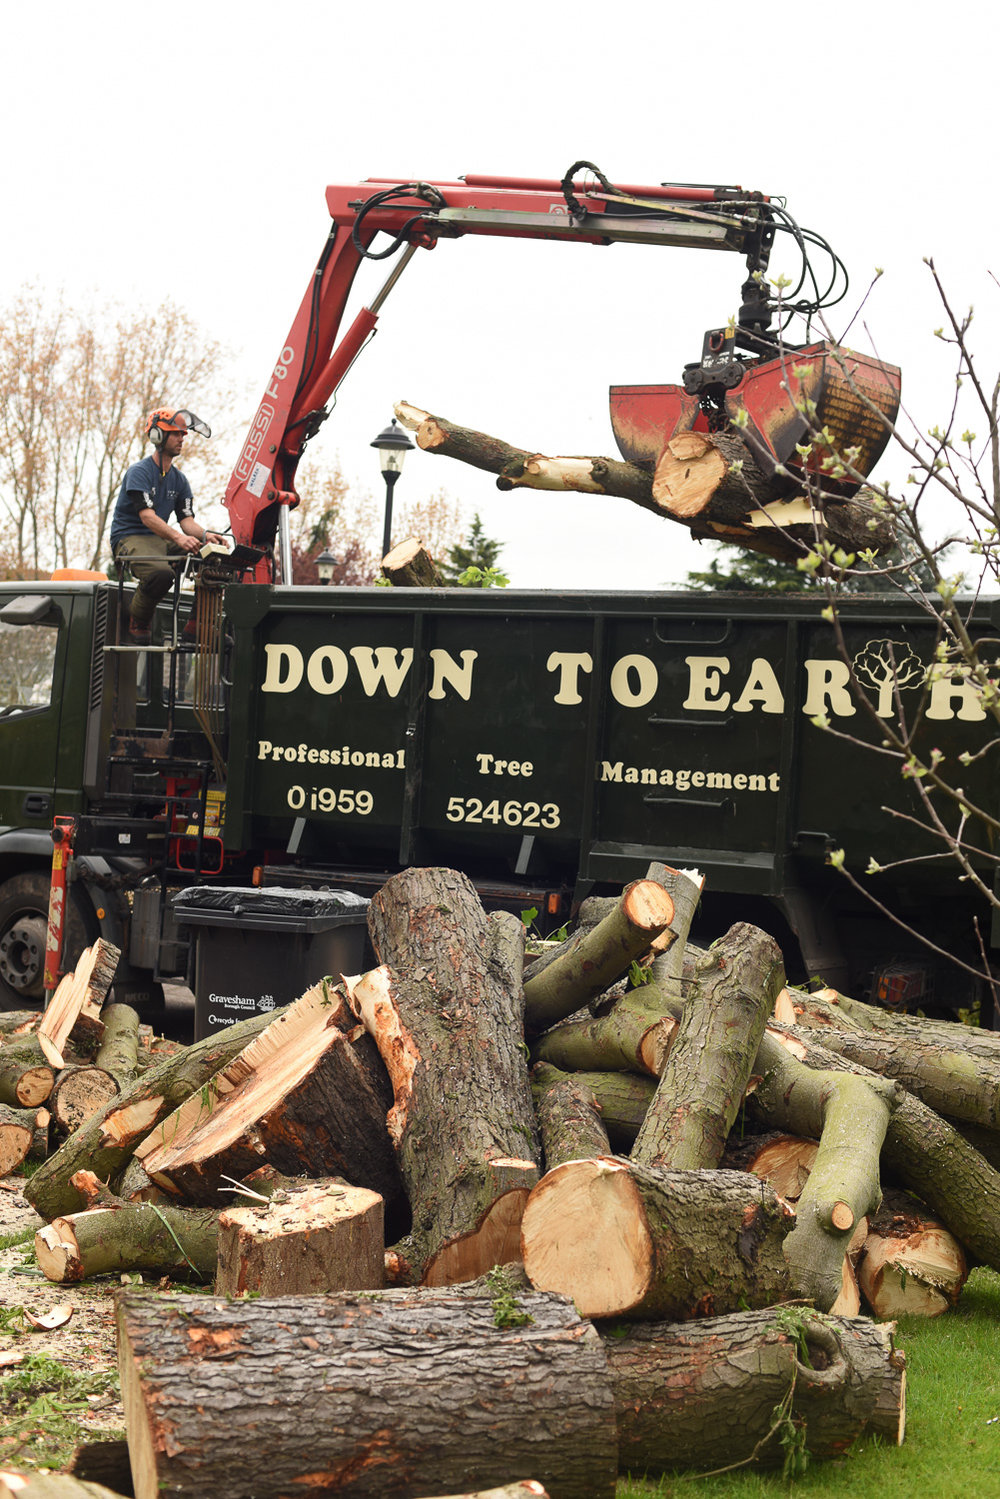 Tree Surgeon and Maintenance Services in Oxted